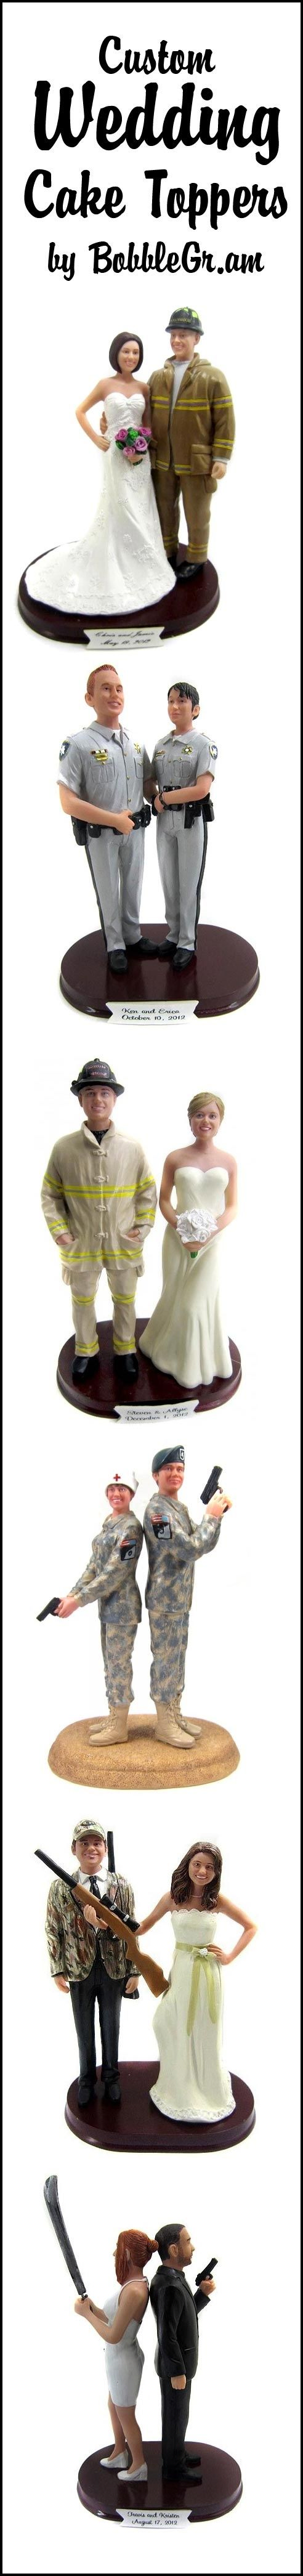 Custom cake toppers are sculpted to look like you!